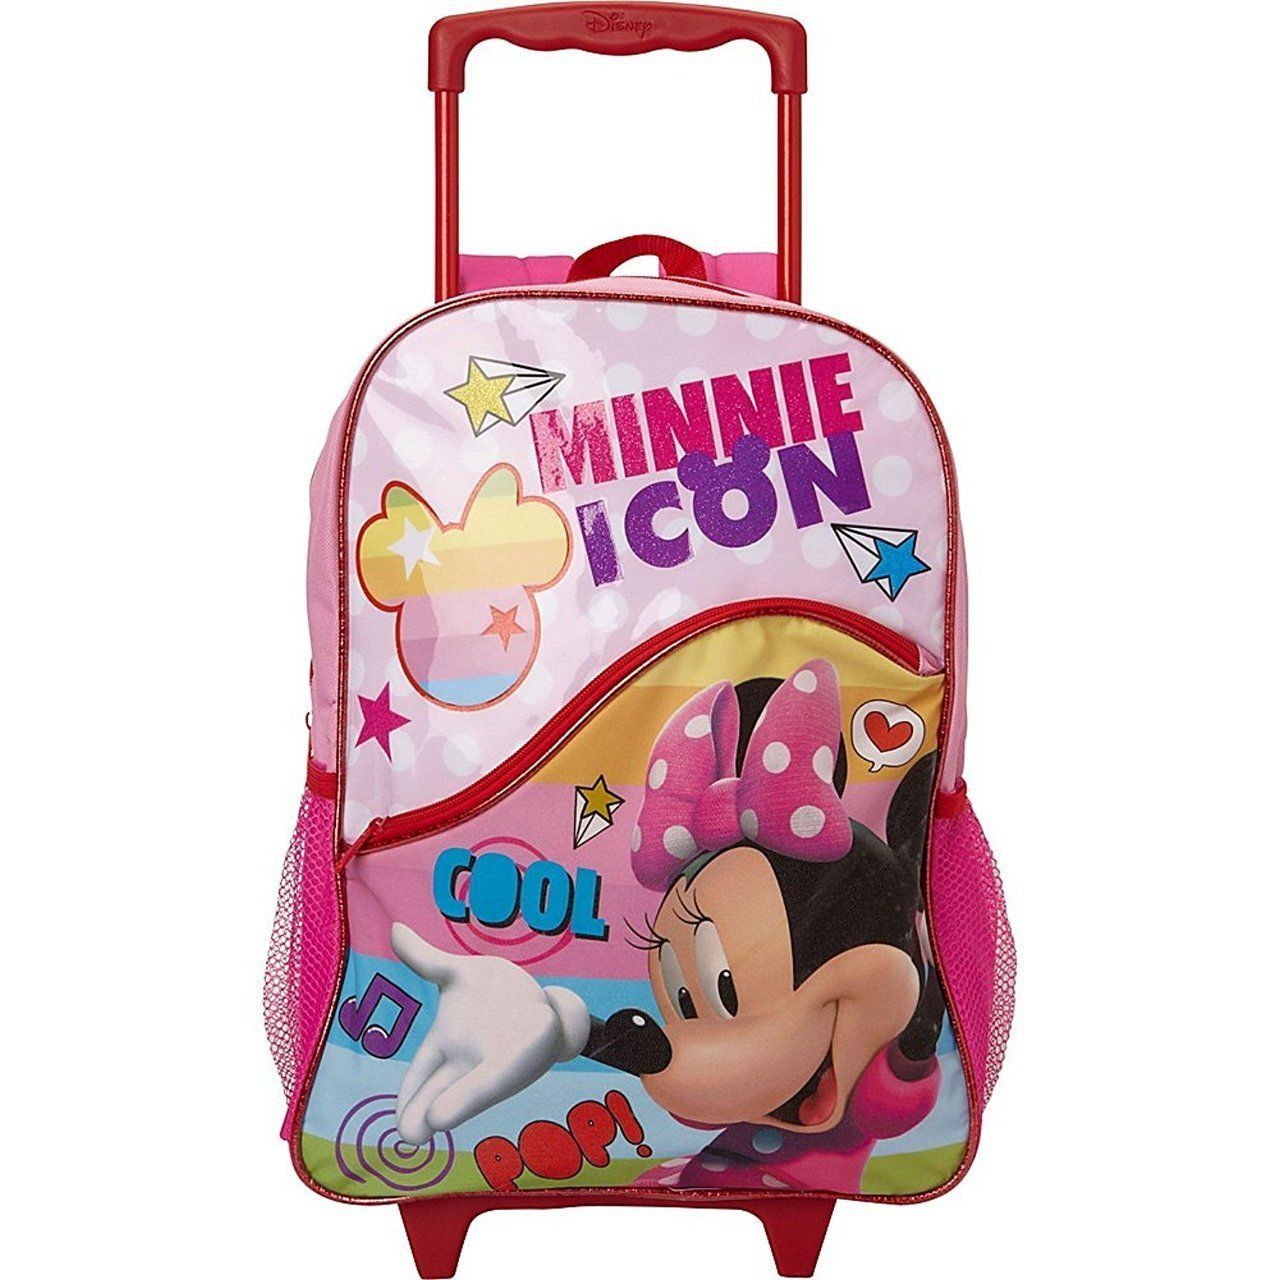 be760d87e5 Disney Minnie Mouse Rolling Backpack by Global Designs